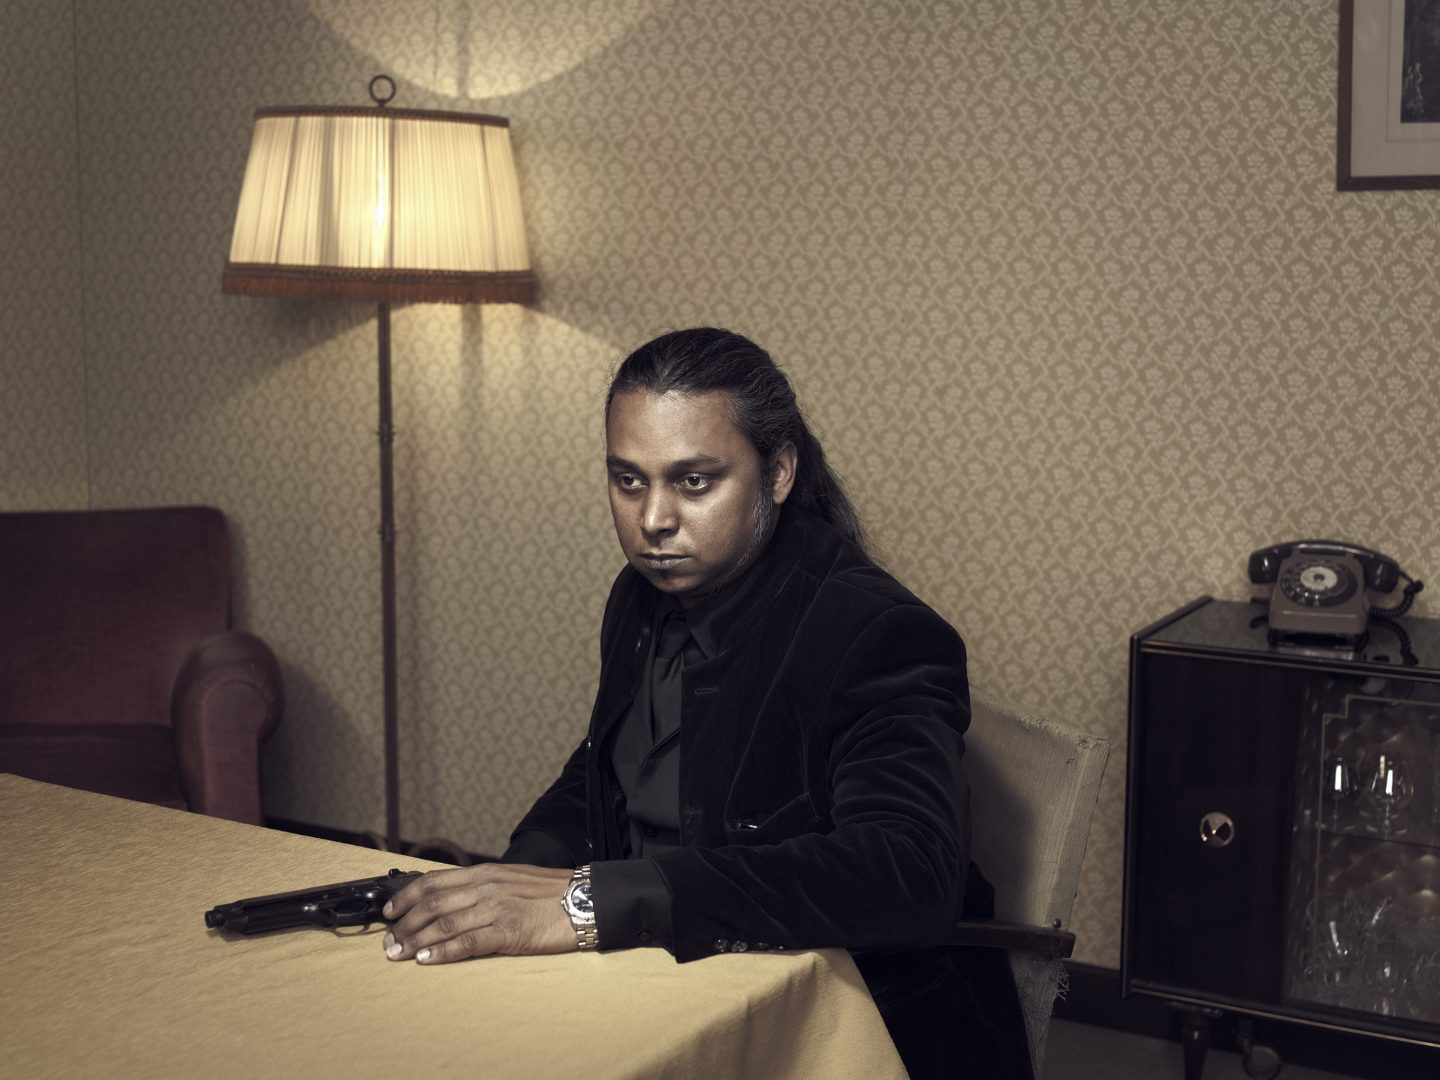 Man with gun sitting at table in room 42 by Stefan Rappo